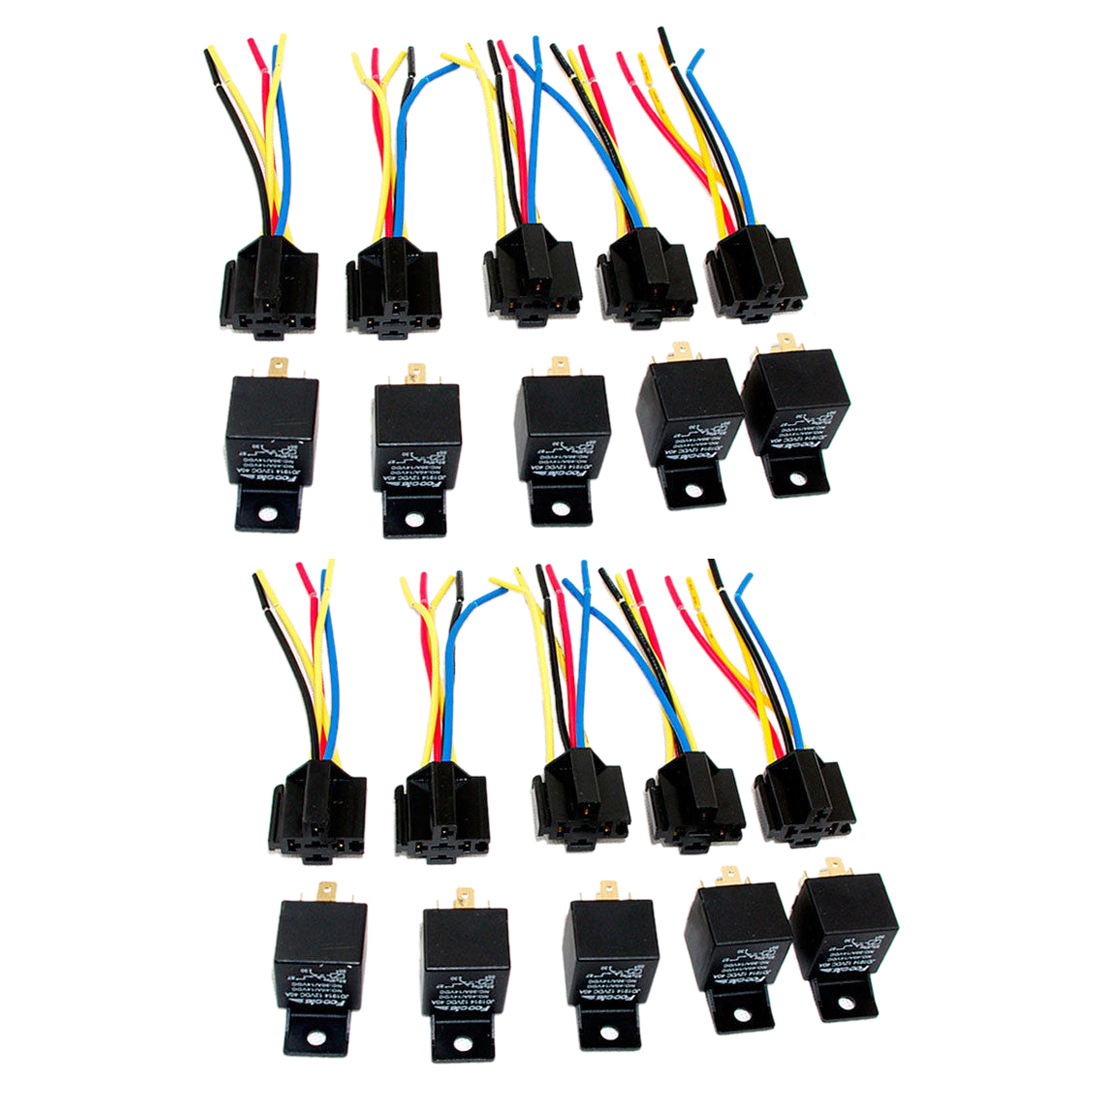 Best price Lot10 New 12 Volt 40 Amp SPDT Automotive Relay with Wires & Harness SocketBest price Lot10 New 12 Volt 40 Amp SPDT Automotive Relay with Wires & Harness Socket